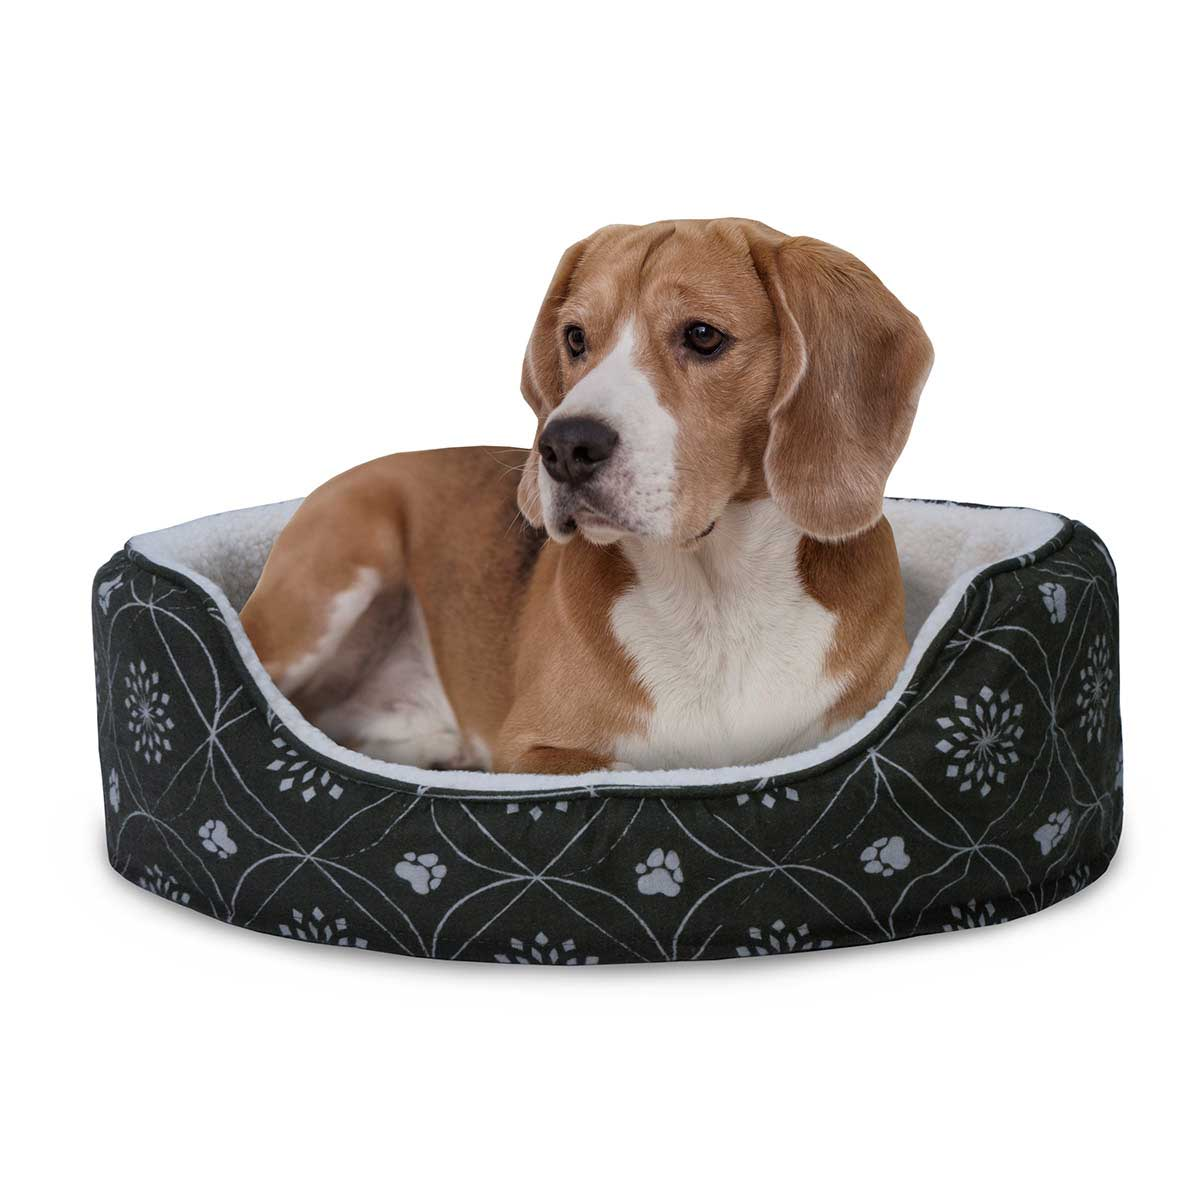 Dog in FurHaven Nap Paw Print Decor Flannel Oval Dark Espresso 21 inches by 26 inches